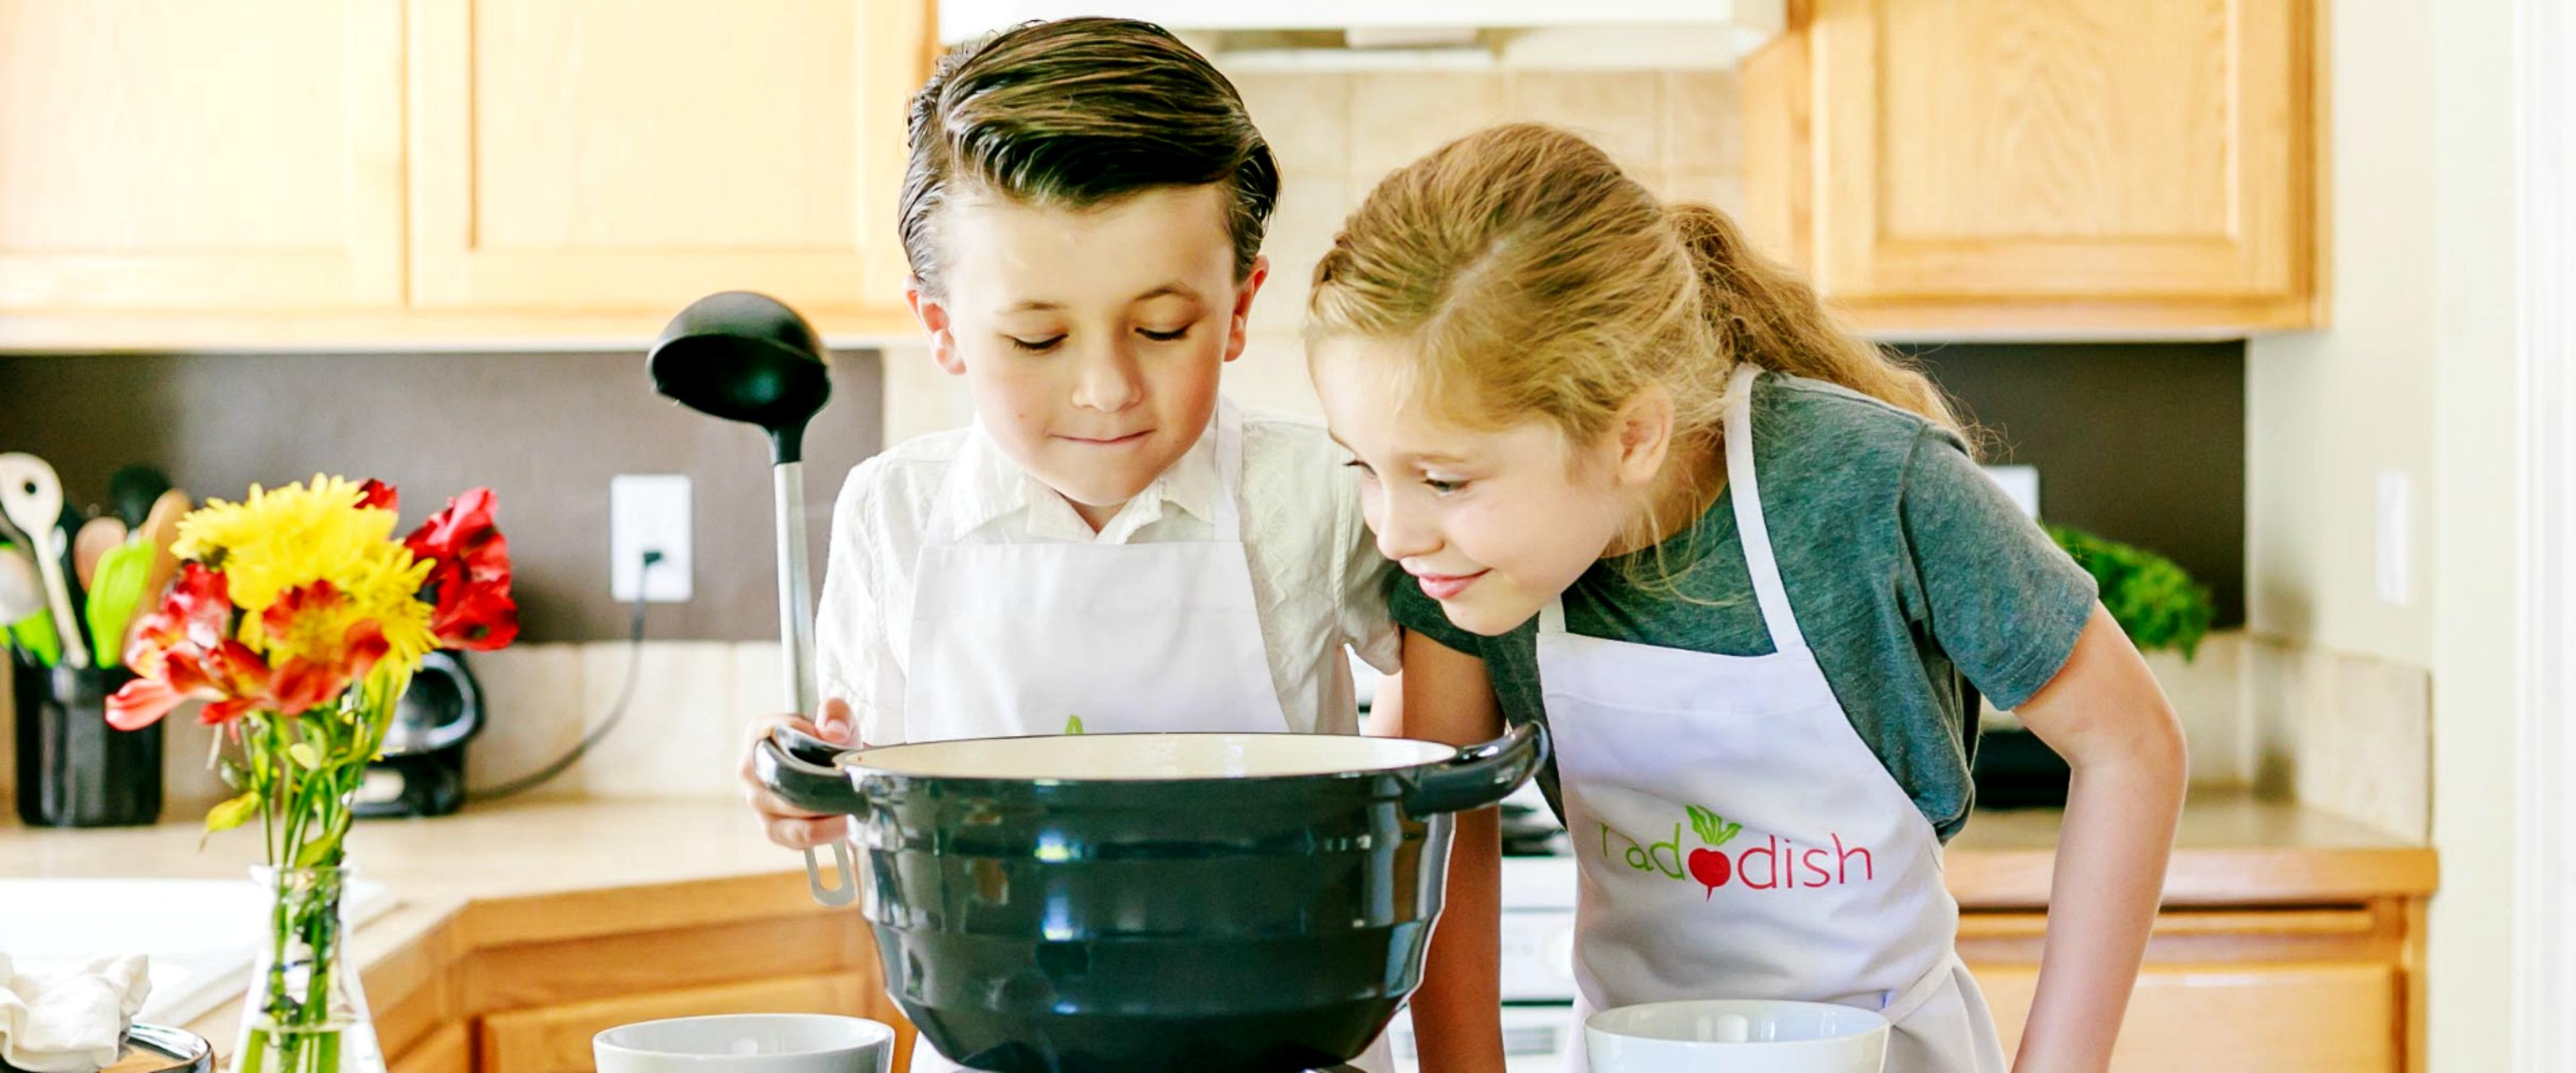 raddish cooking club for kids edible education family fun